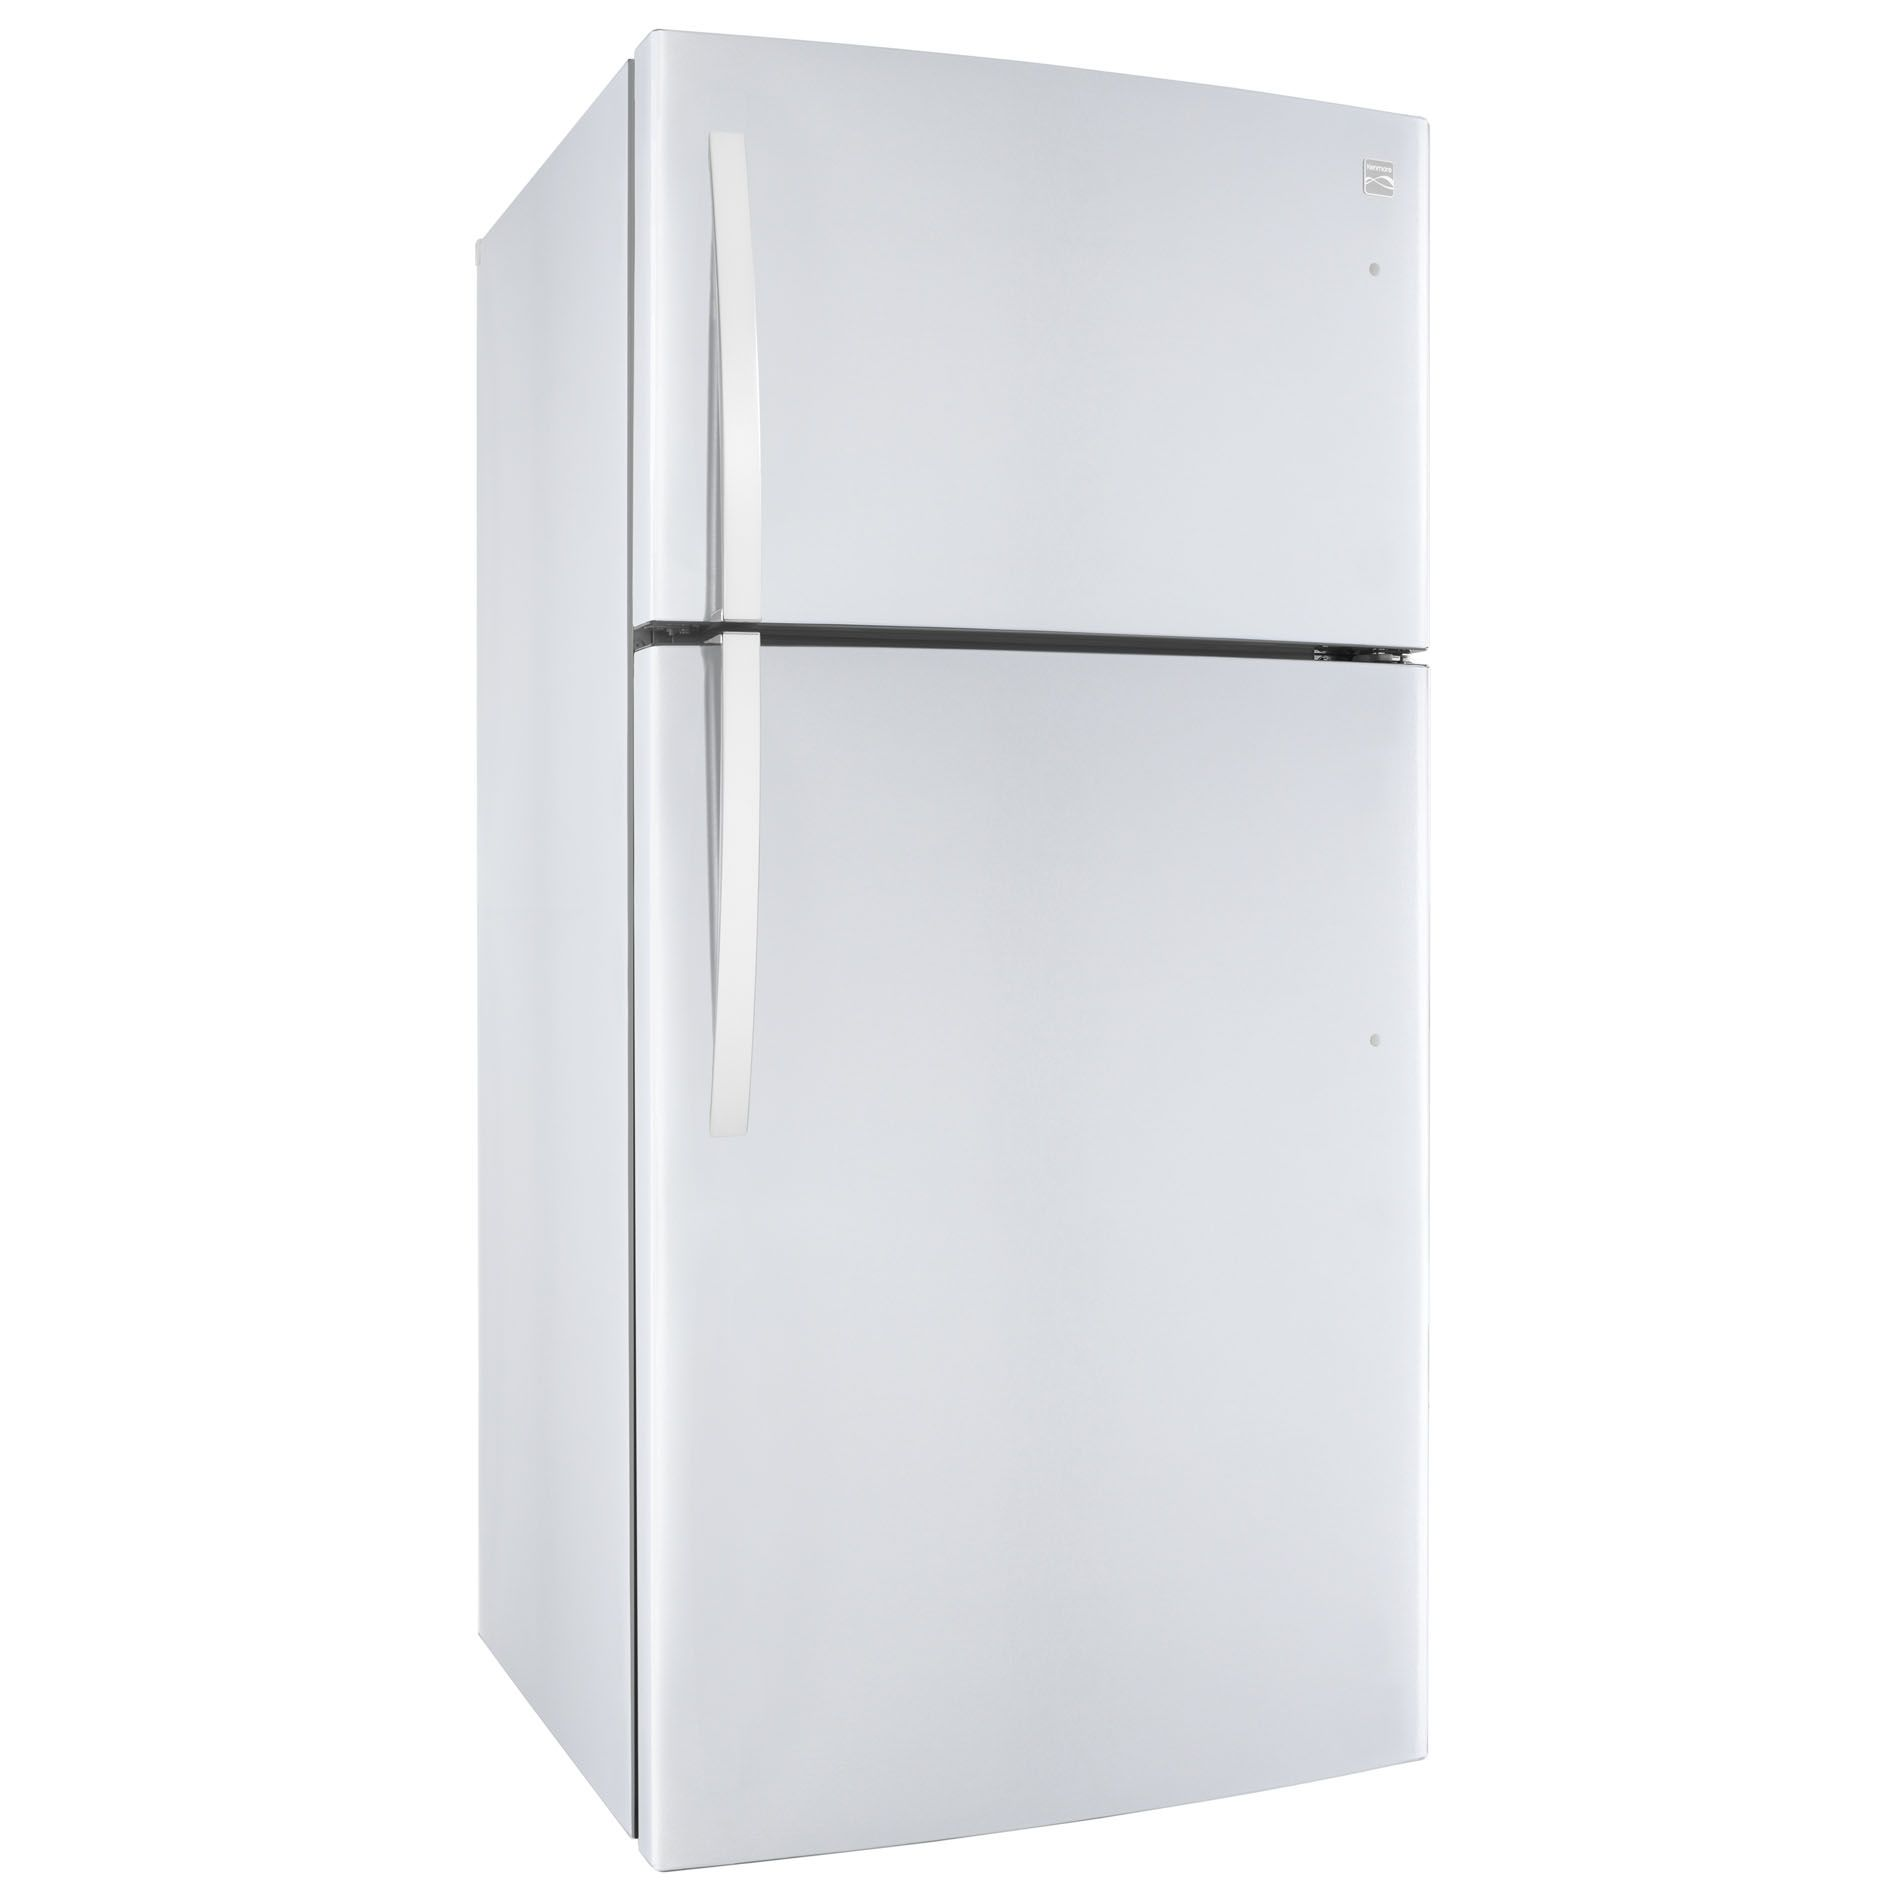 Kenmore 20 cu. ft. White Top-Freezer Refrigerator